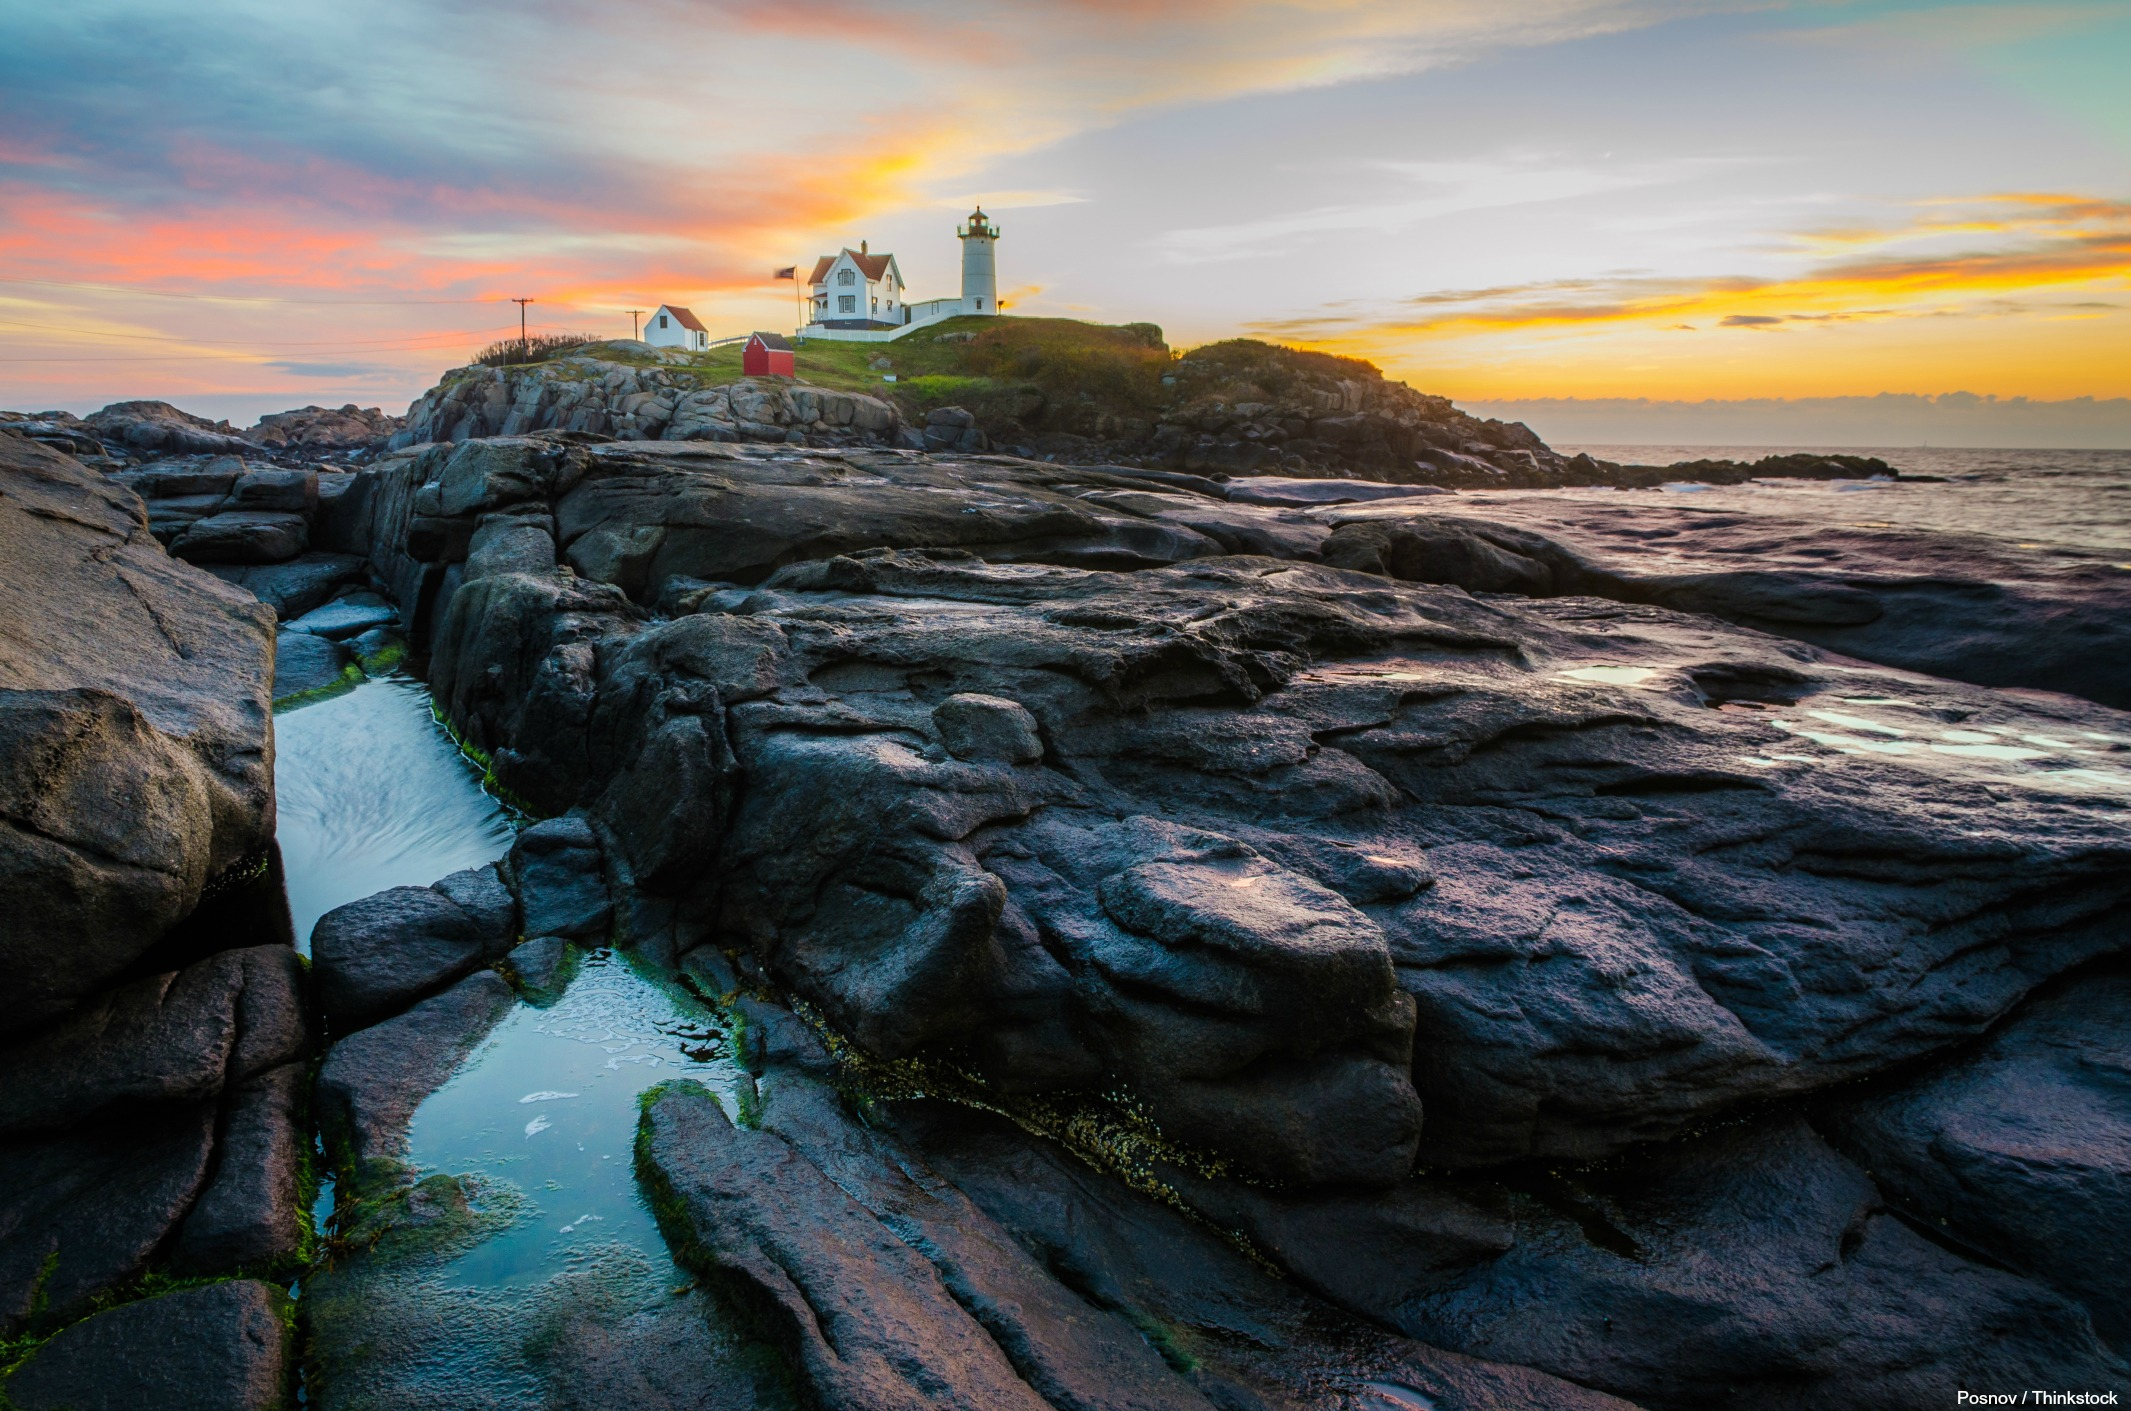 How to See the Best of the Maine Coastline